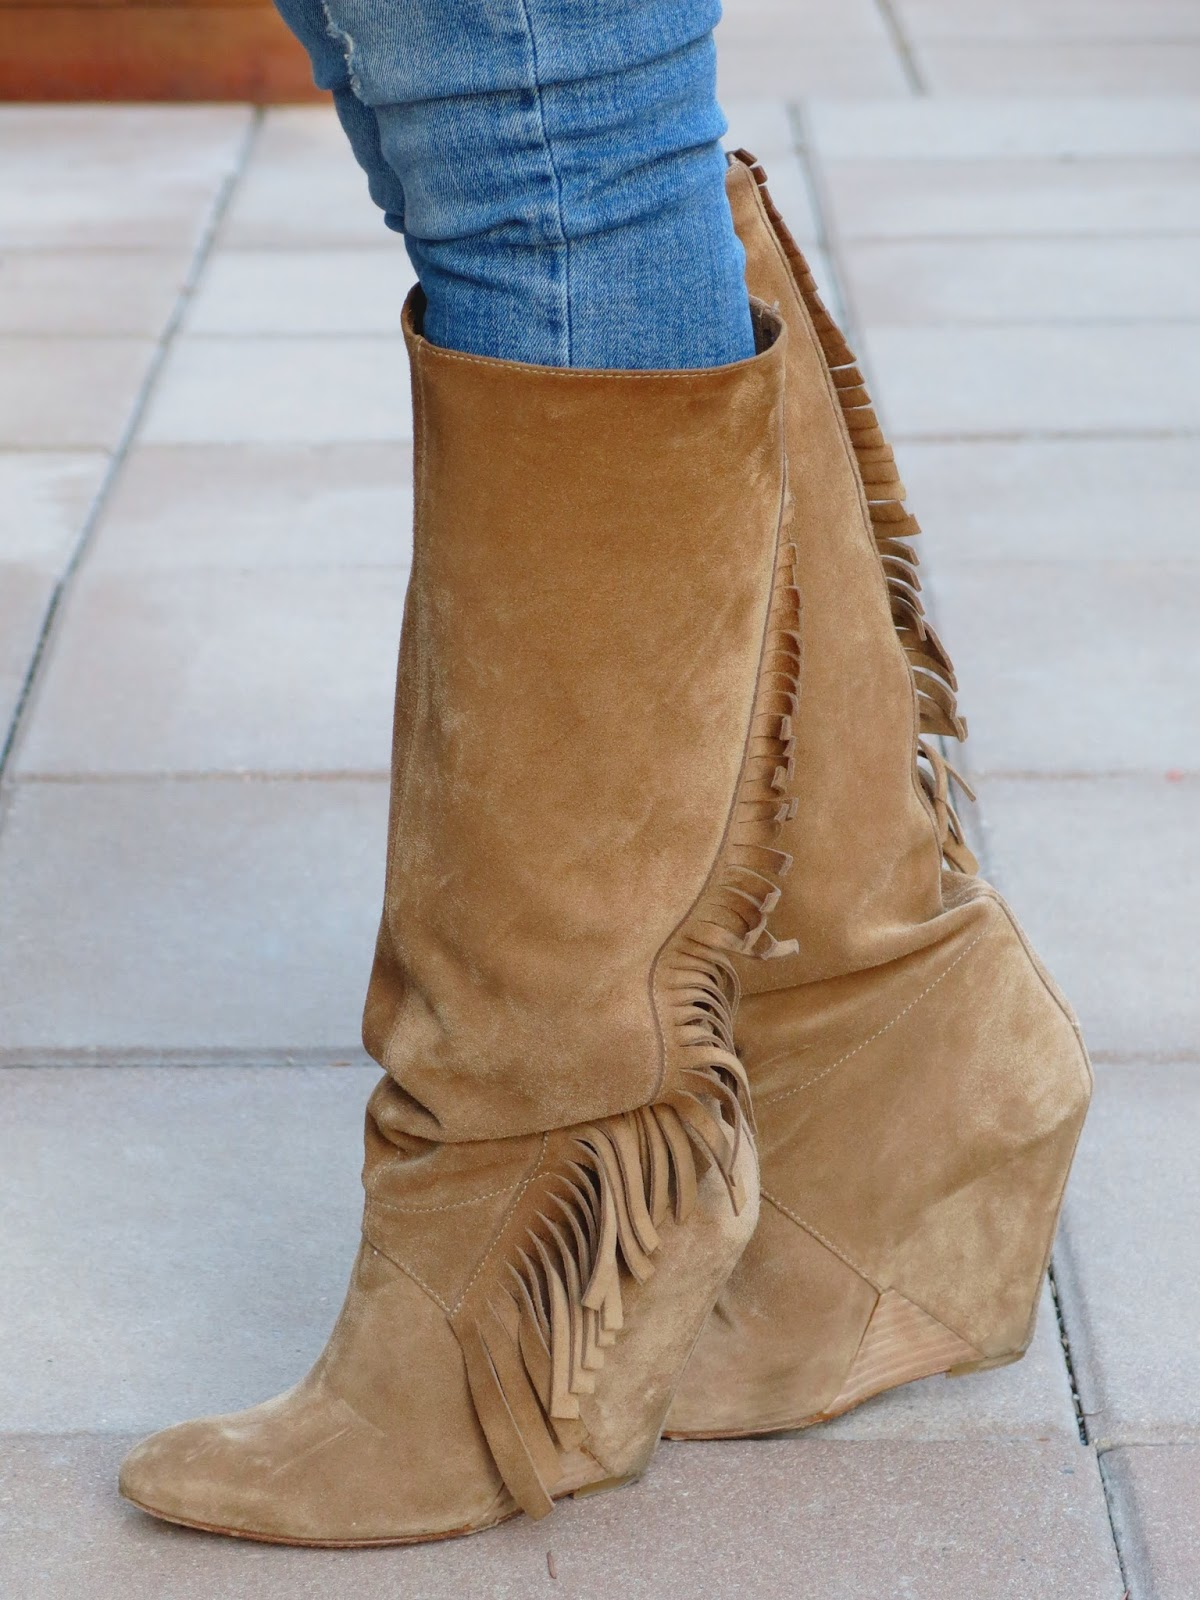 fringy wedge boots